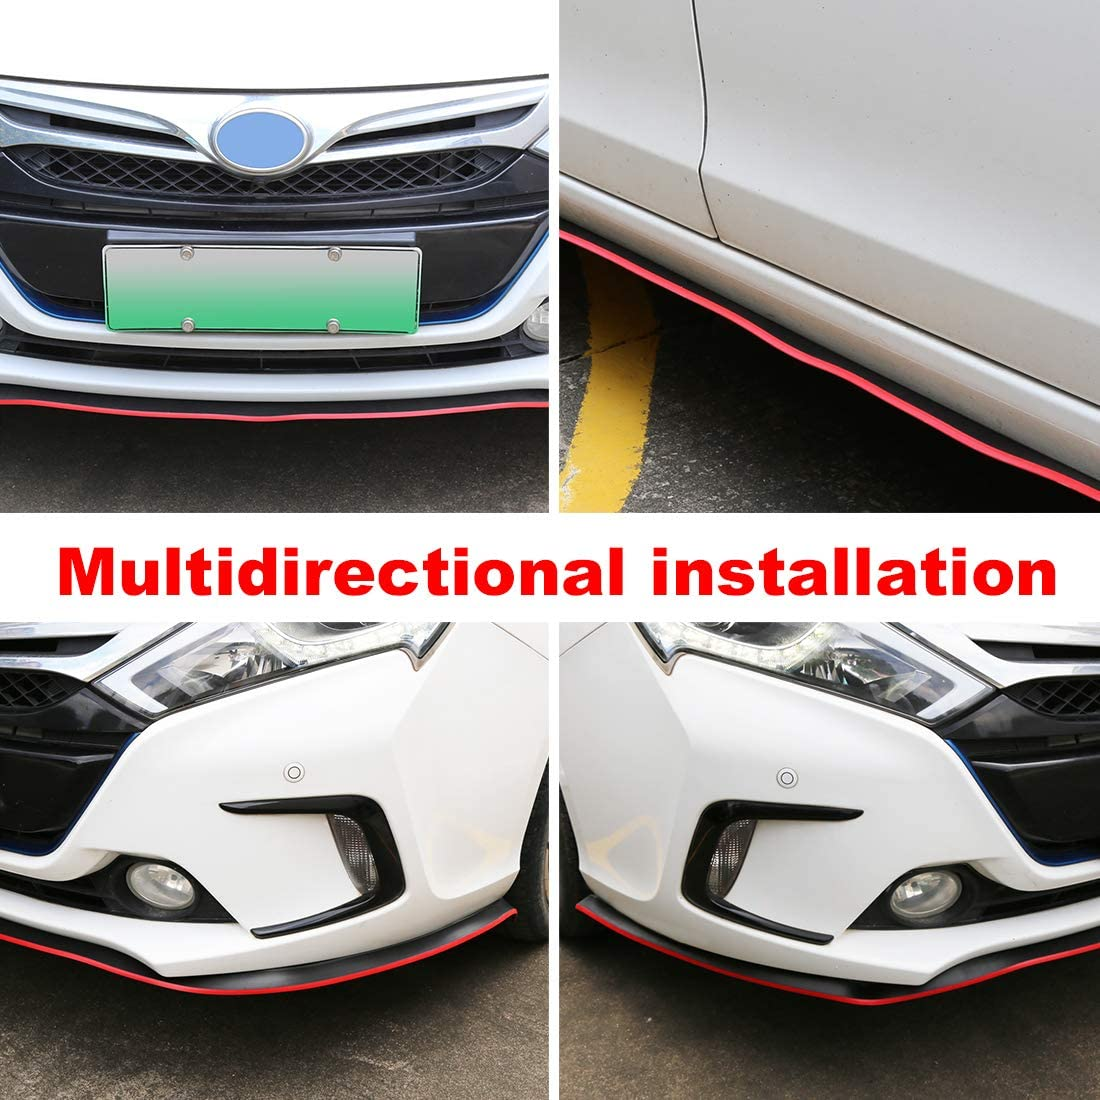 X AUTOHAUX 2.5m 8.2ft Univesal Rubber Front Bumper Lip Splitter Body Side Skirt Protector Red for Car